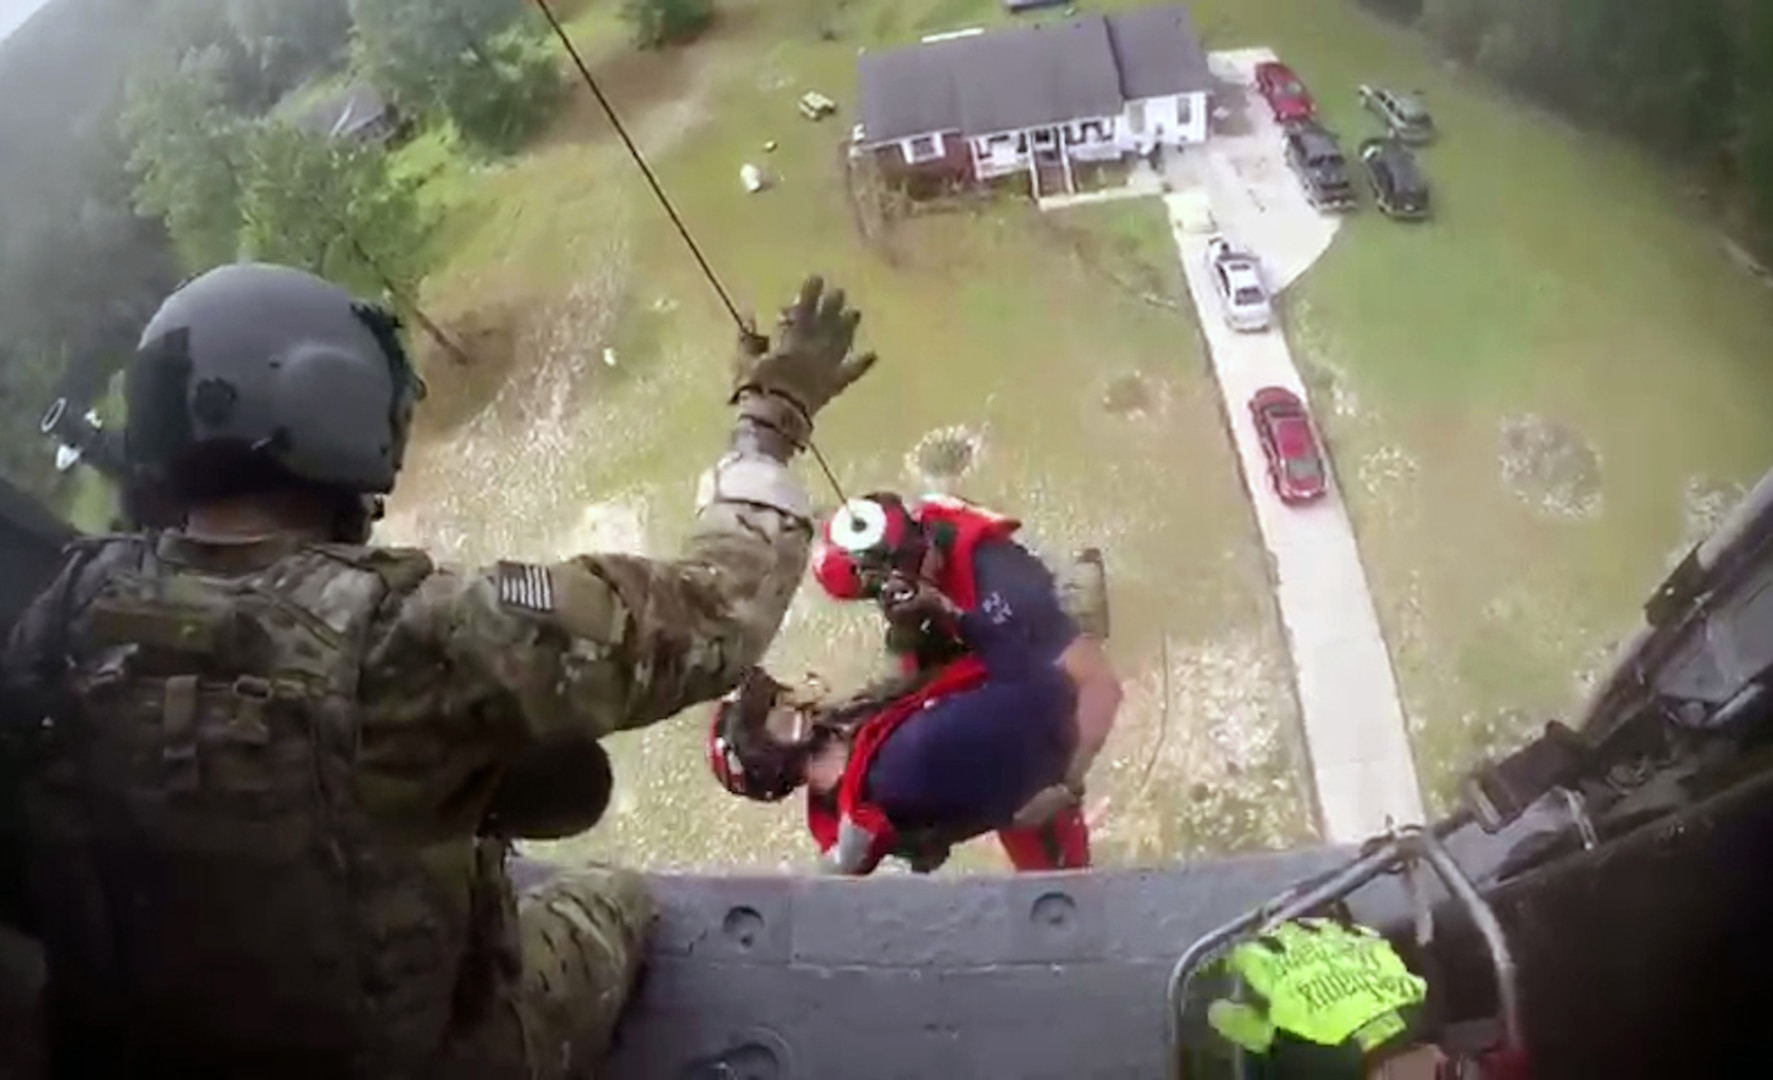 Pararescue Airmen Tech Sgt. Ryan Dush and Staff Sgt. Griffin Elzey, both members of the New York Air National Guard's 106th Rescue Wing, are lowered out of a HH-60 Pave Hawk helicopter assigned to the wing during a rescue mission in Lumberton, North Carolina, on Sept. 17, 2018. The two Airmen were descending to make an assessment of how many people were in the house, surrounded by flood waters and the best way to get them out. Eventually 15 people were rescued by two HH-60s, one flown by New York Air Guardsmen and the other by an aircrew from the California Air National Guard's 129th Rescue Wing.